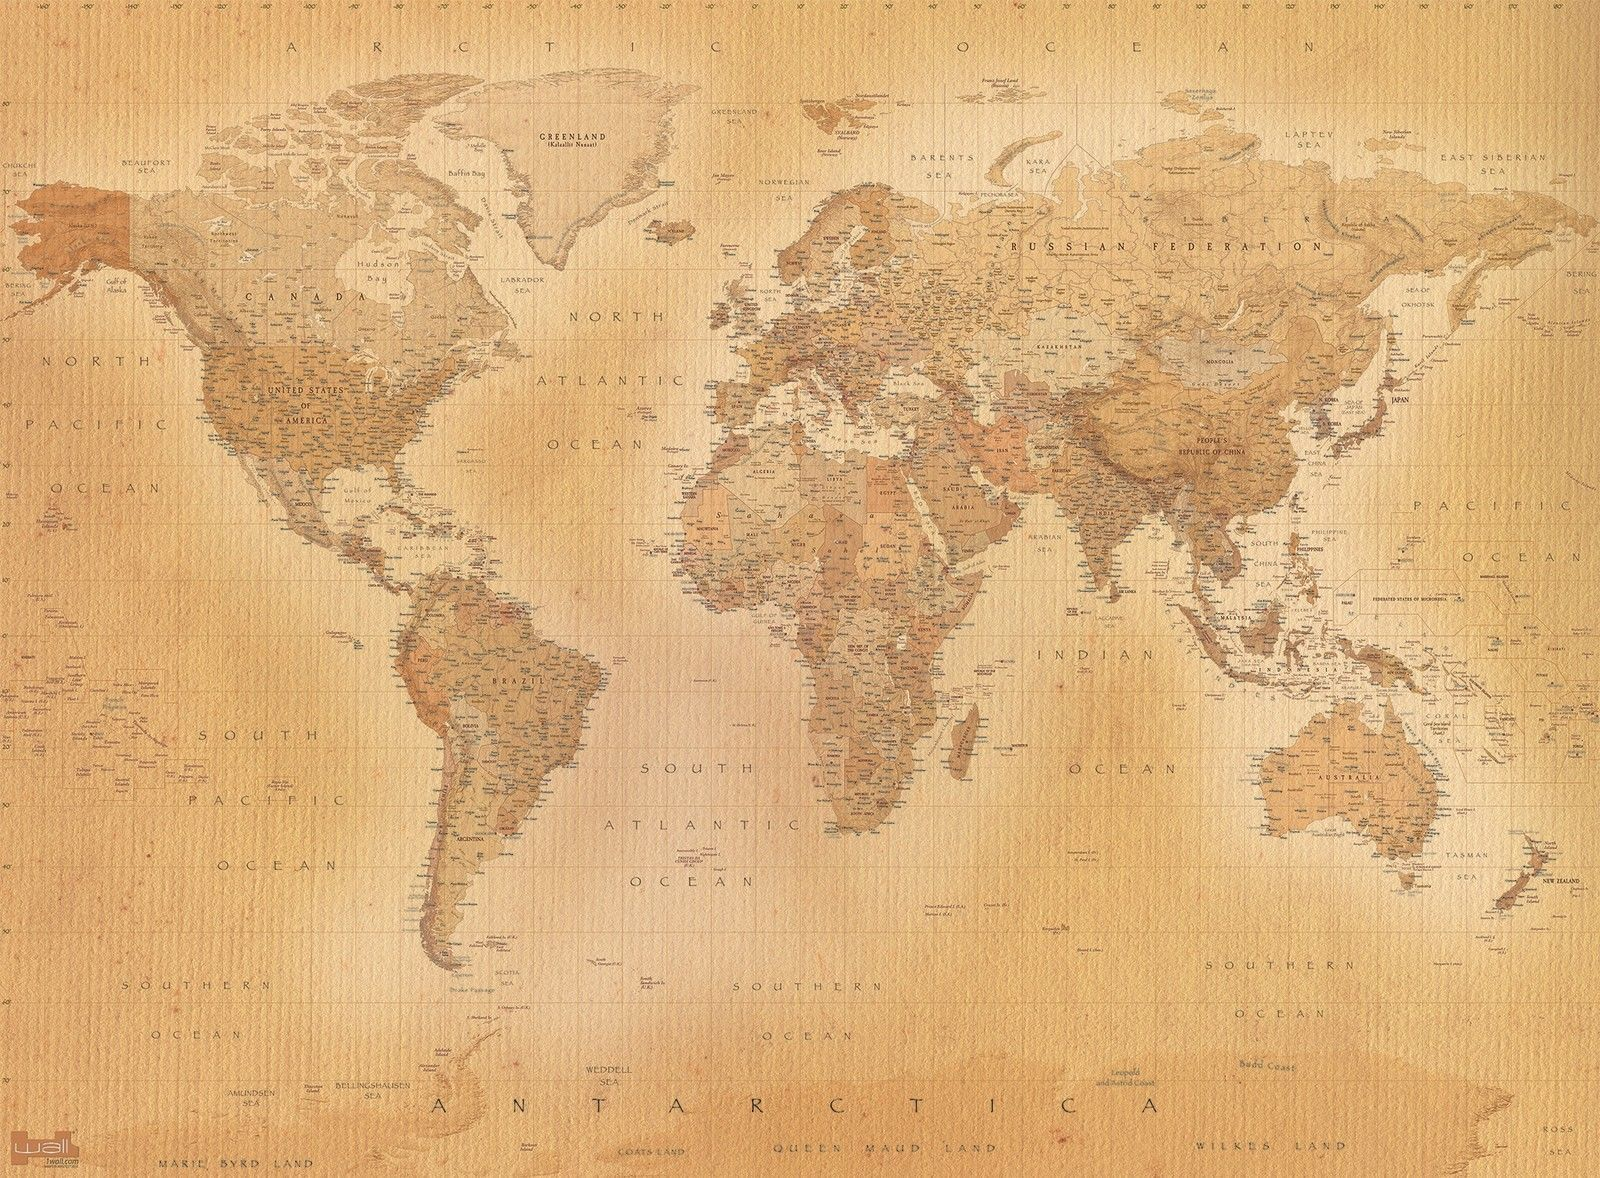 Old style vintage world map wallpaper wall mural 232m x 315m new old style vintage world map wallpaper wall mural 232m x 315m new free p gumiabroncs Gallery